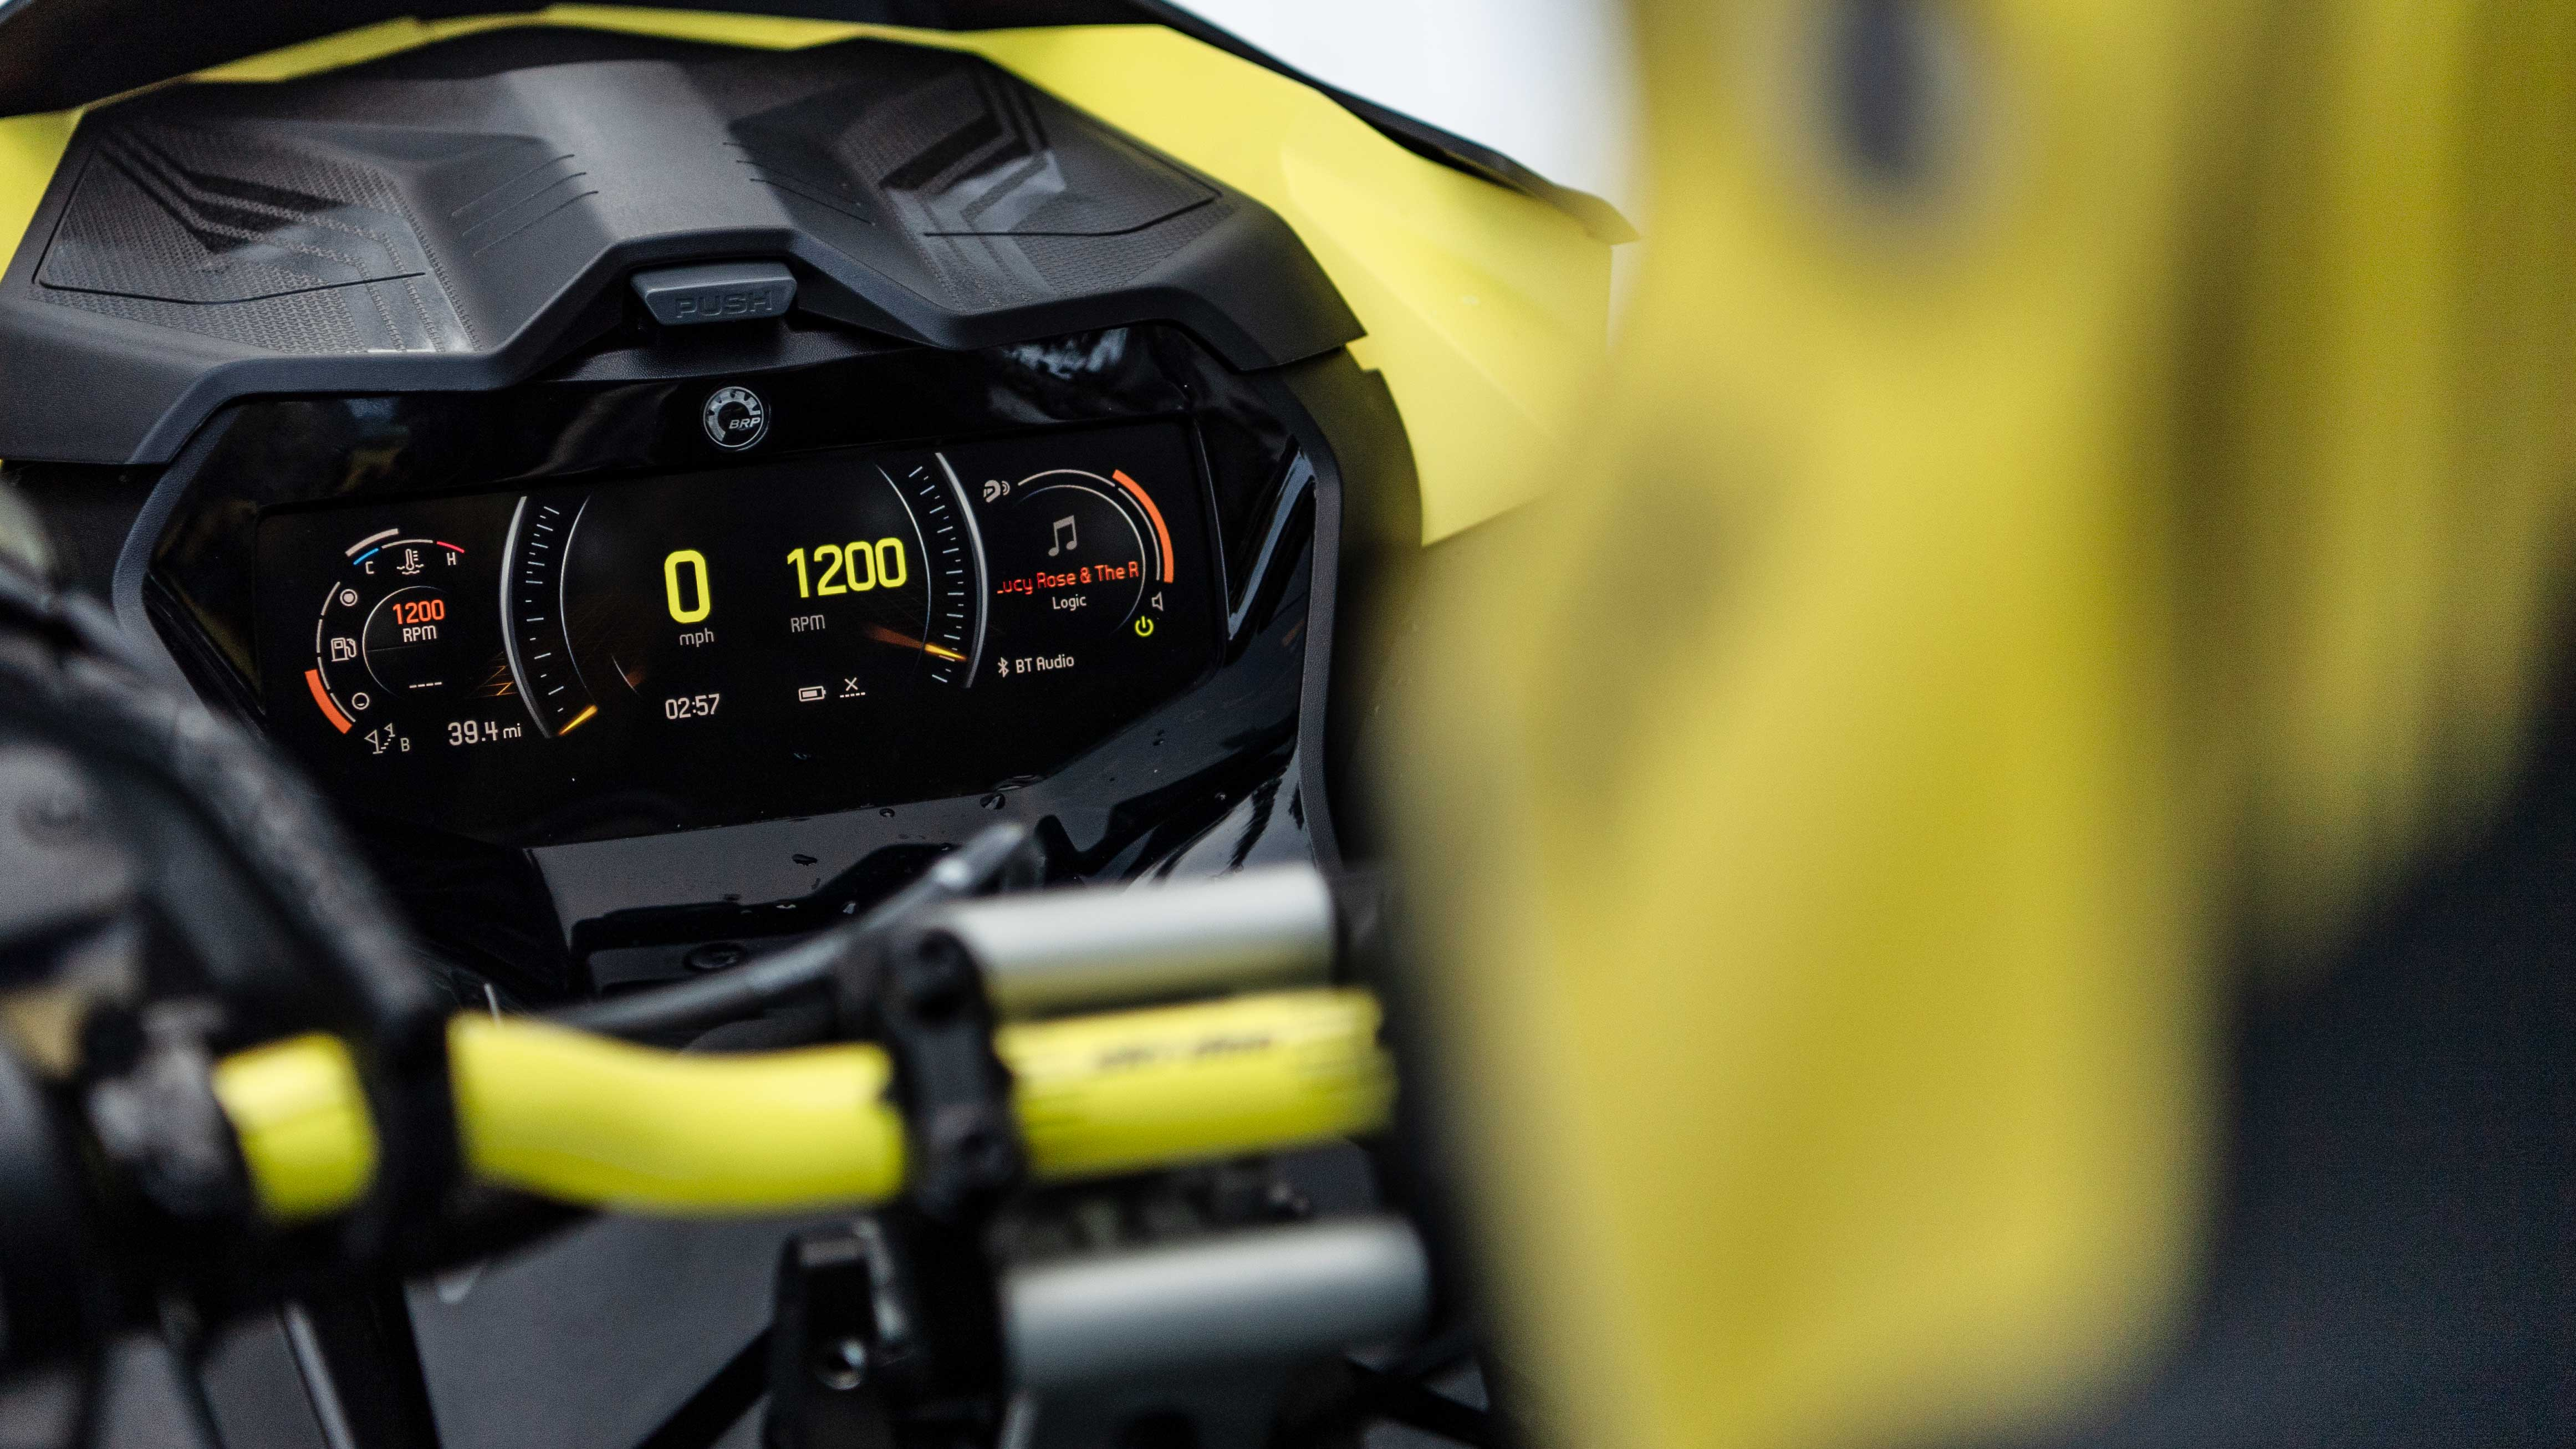 Ski-Doo full color gauge with BRP Connect compatibility